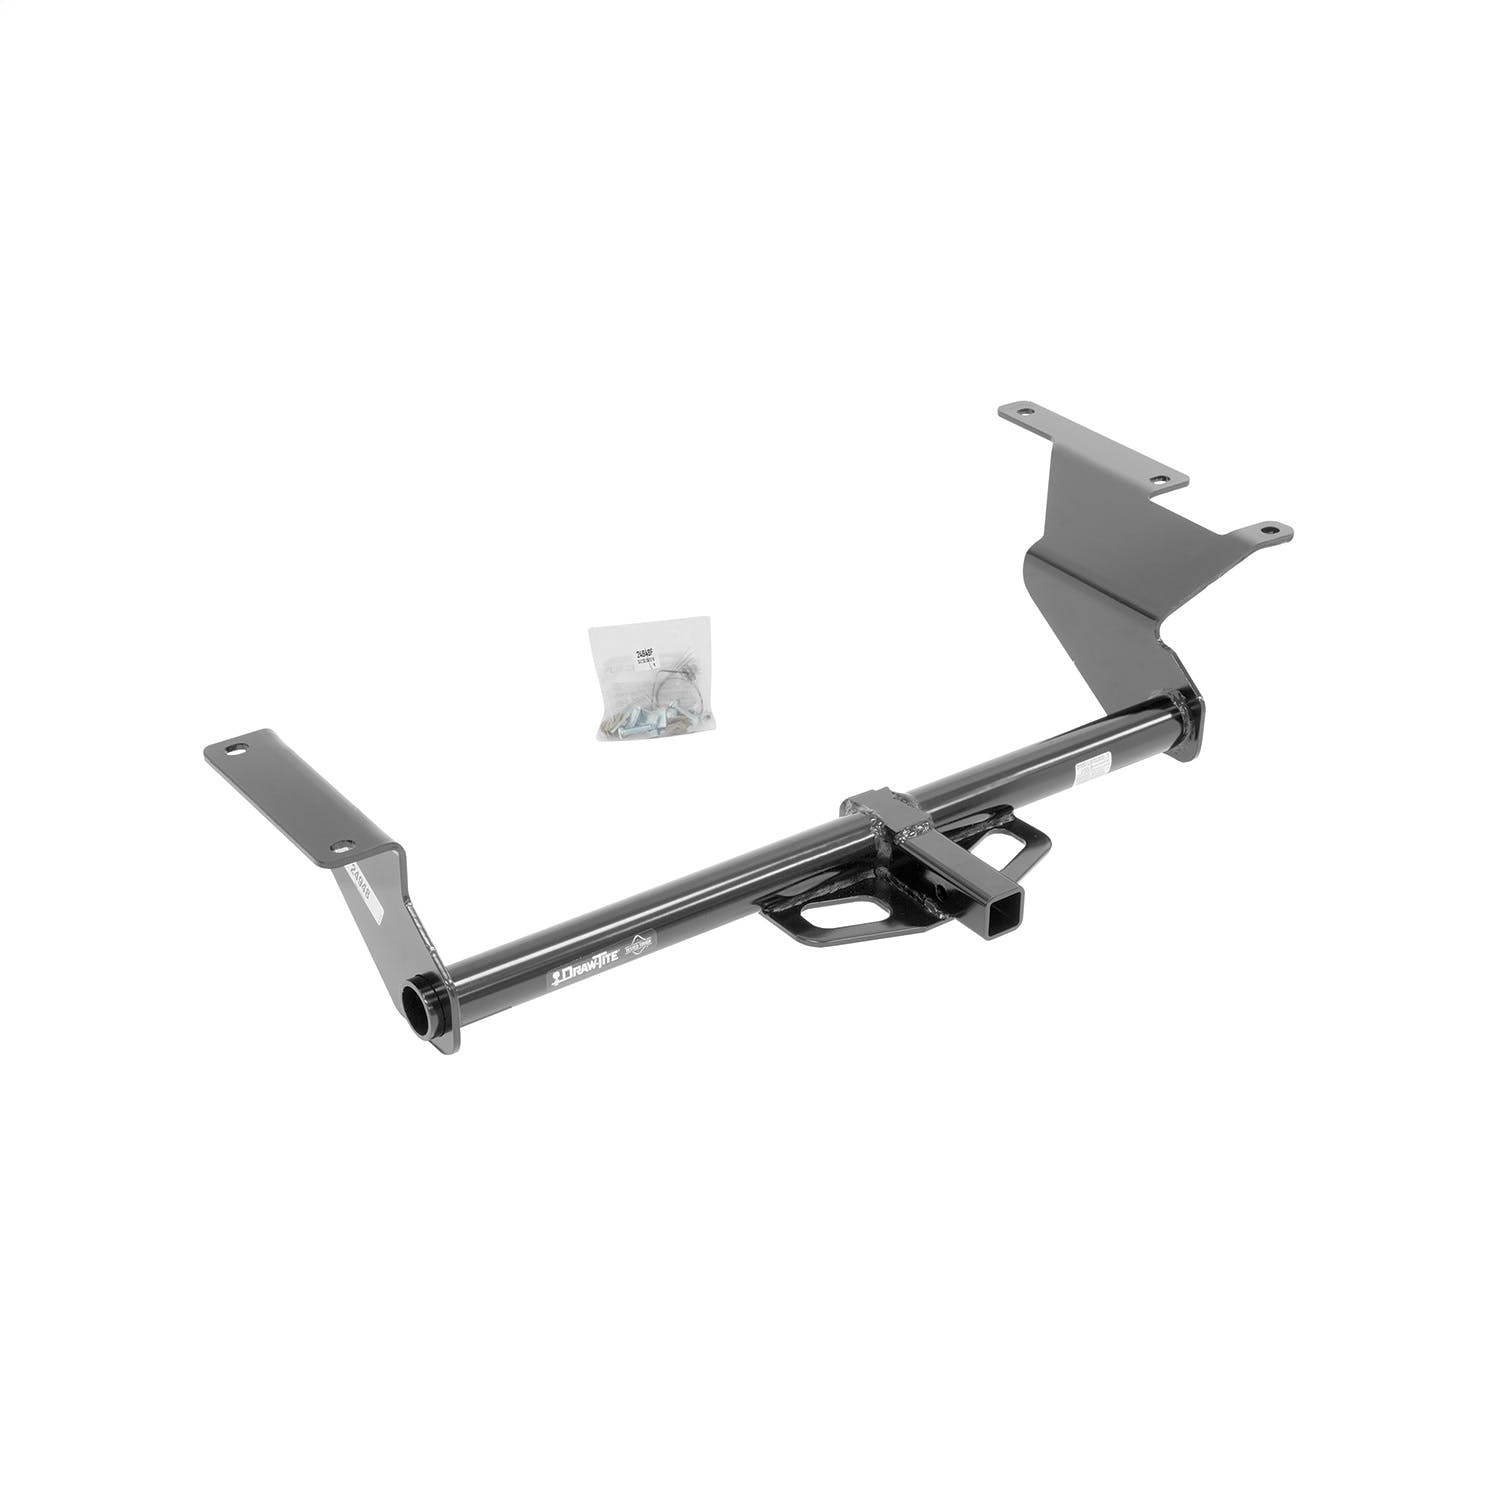 Draw-Tite 24962 Class I Sportframe Hitch with 1-1//4 Receiver Tube Opening